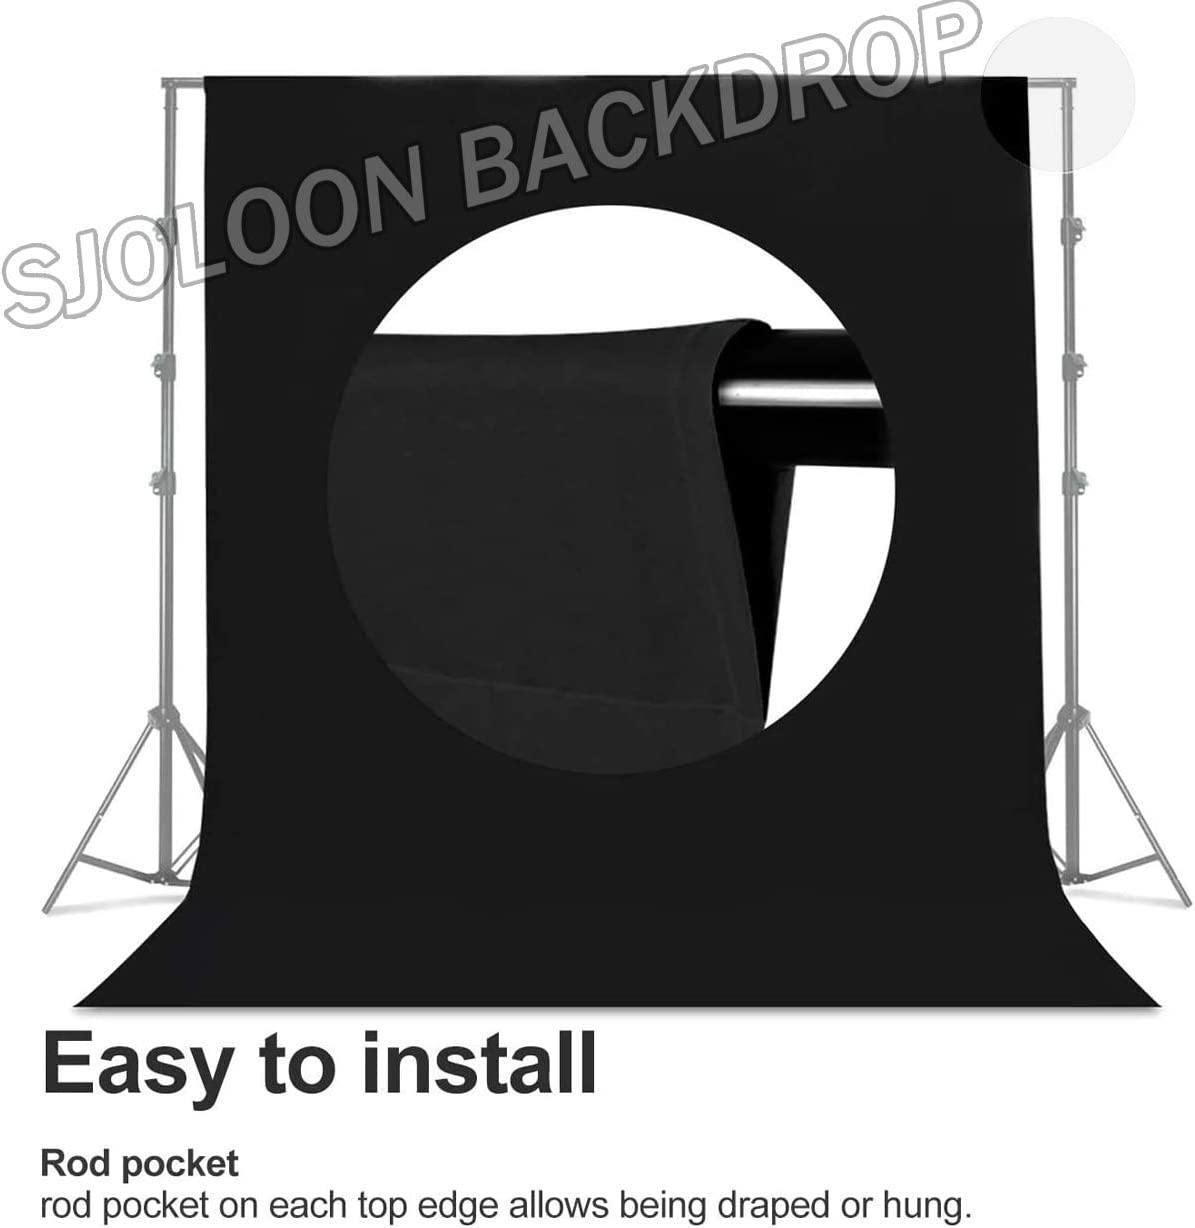 SJOLOON 5x7FT Black Studio Photography Backdrop Collapsible Backdrop Muslin Backdrop for Television Video Photography